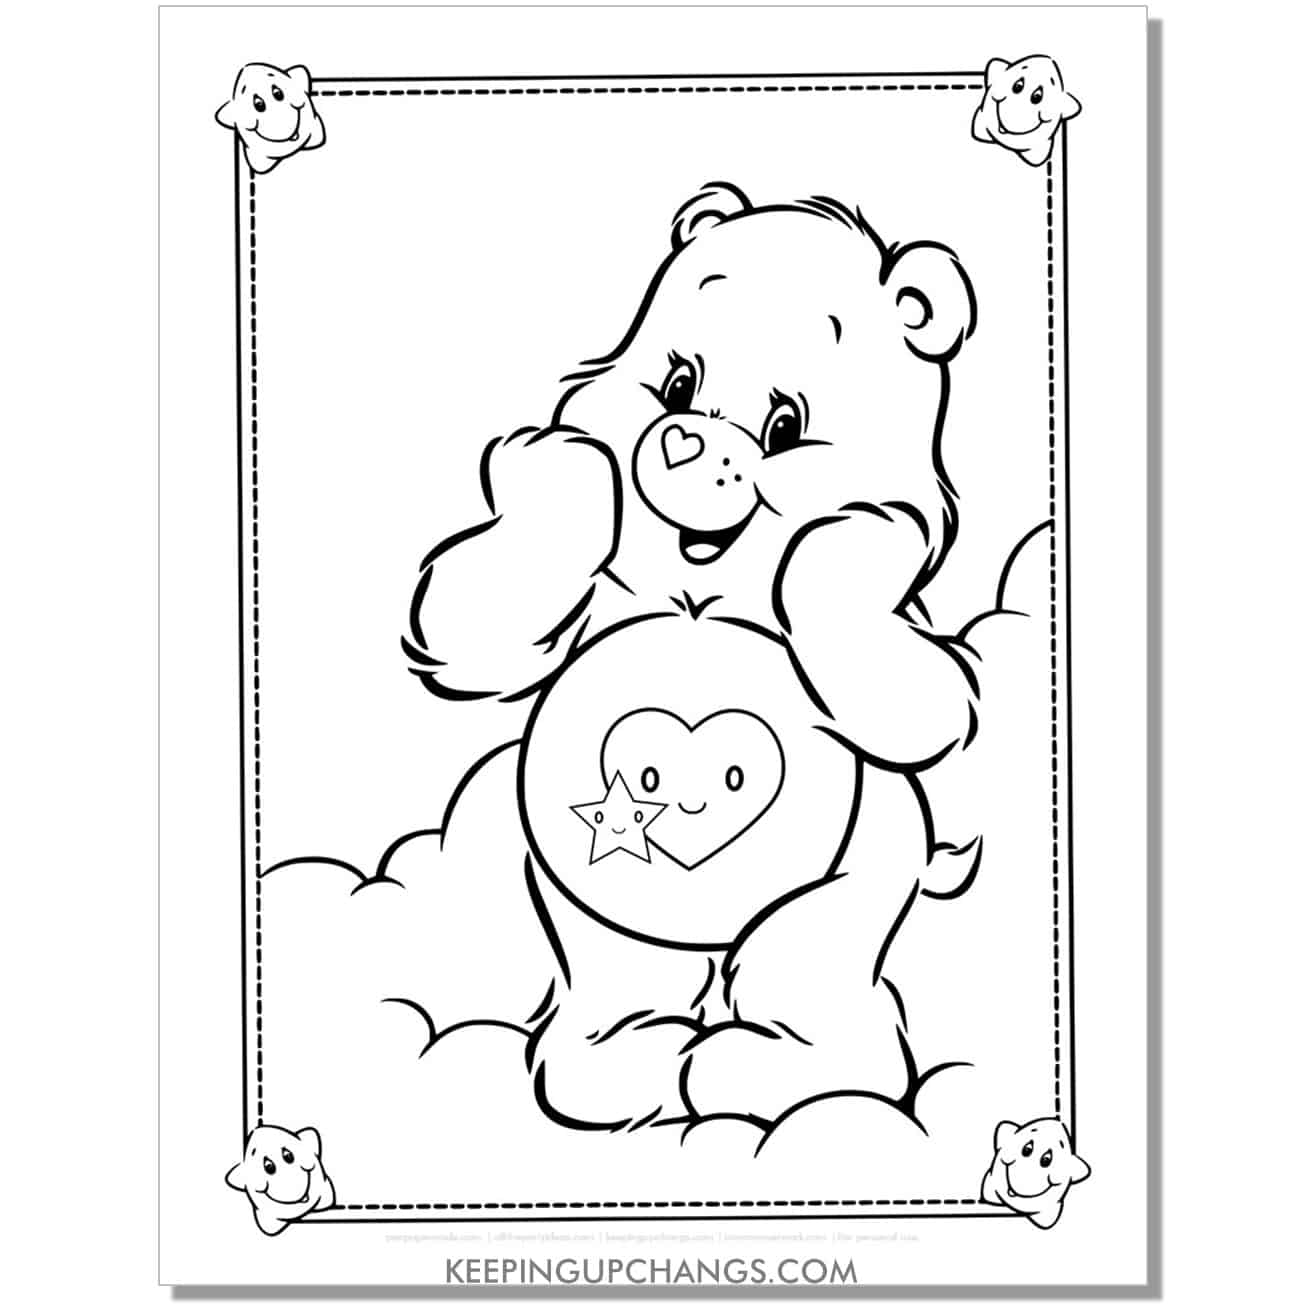 take care bear standing on cloud coloring page.